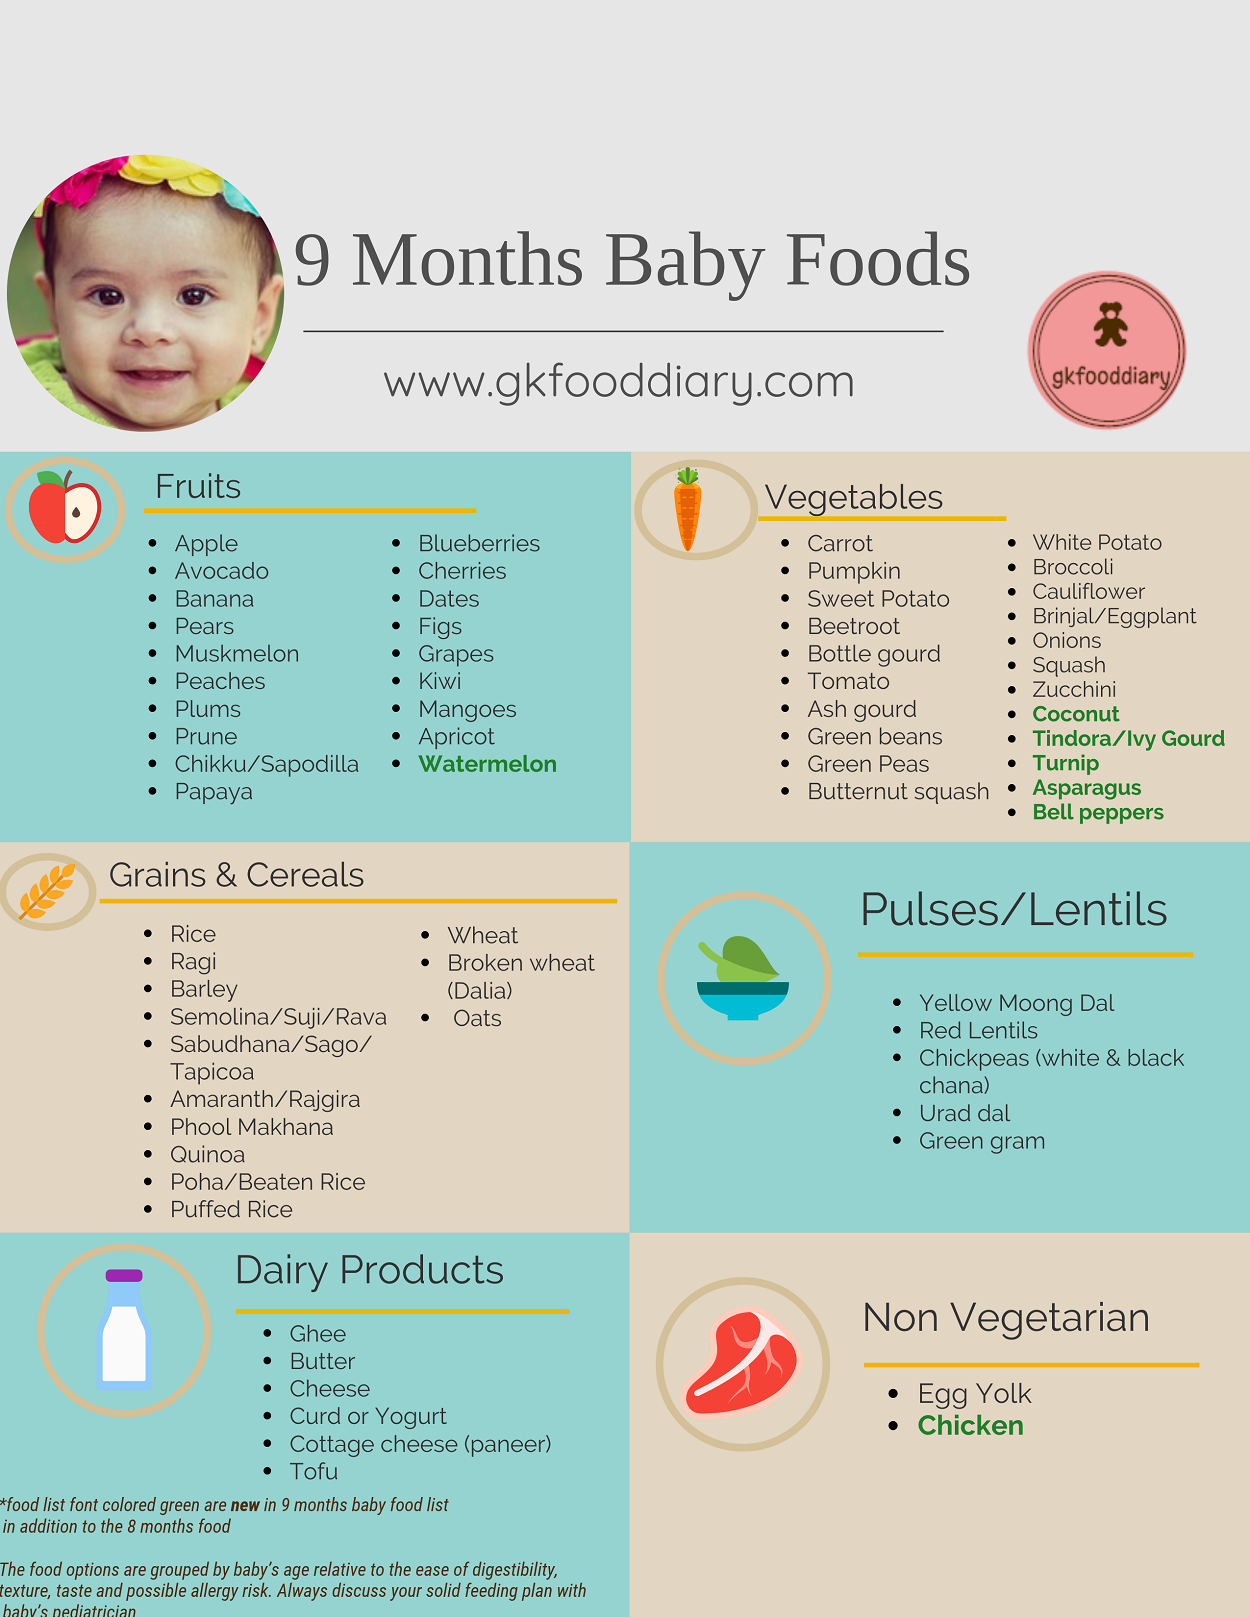 Meal Ideas for a Ten Month Old Baby